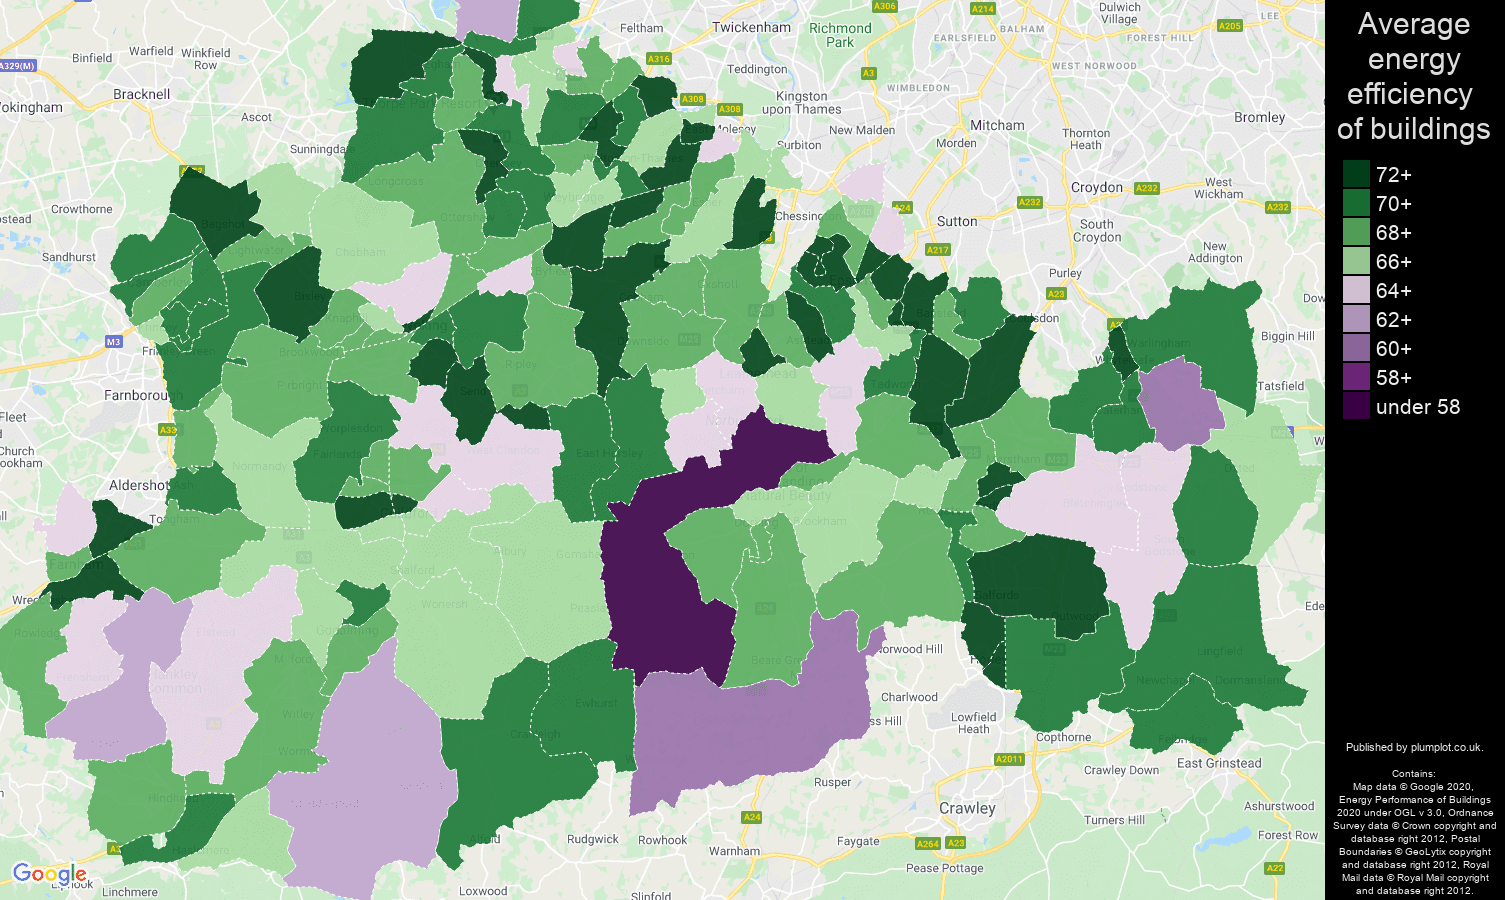 Surrey map of energy efficiency of flats